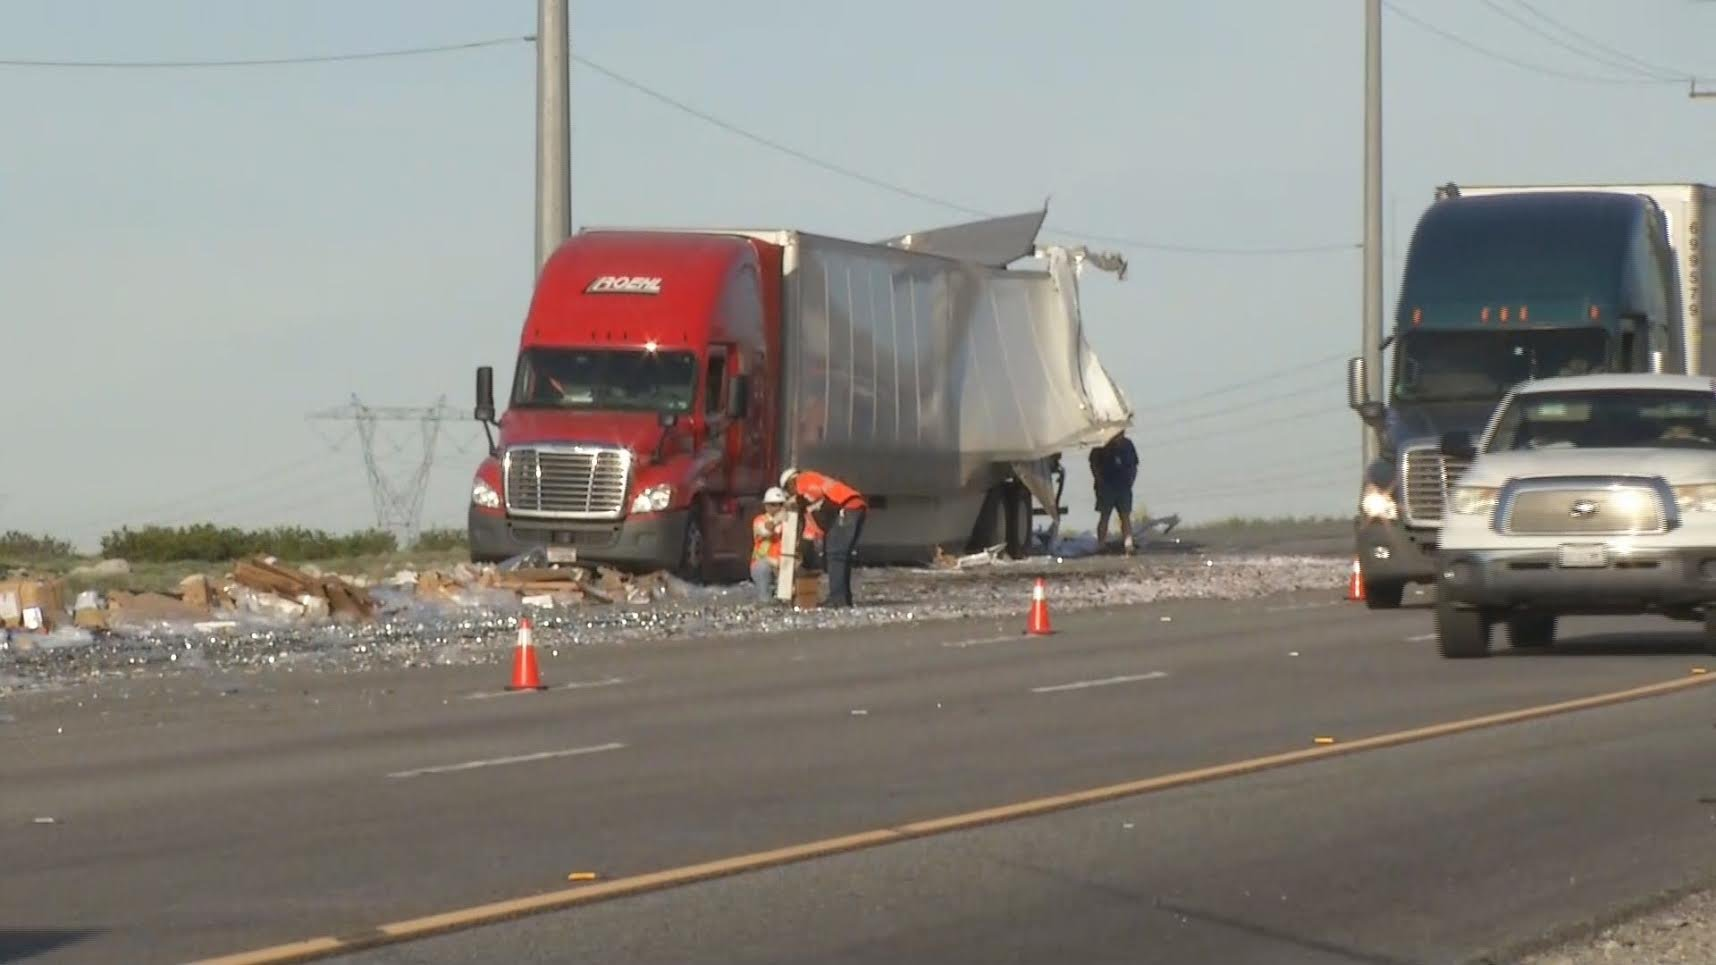 Two Big Rigs Collide In Whitewater - Palm Springs News ...